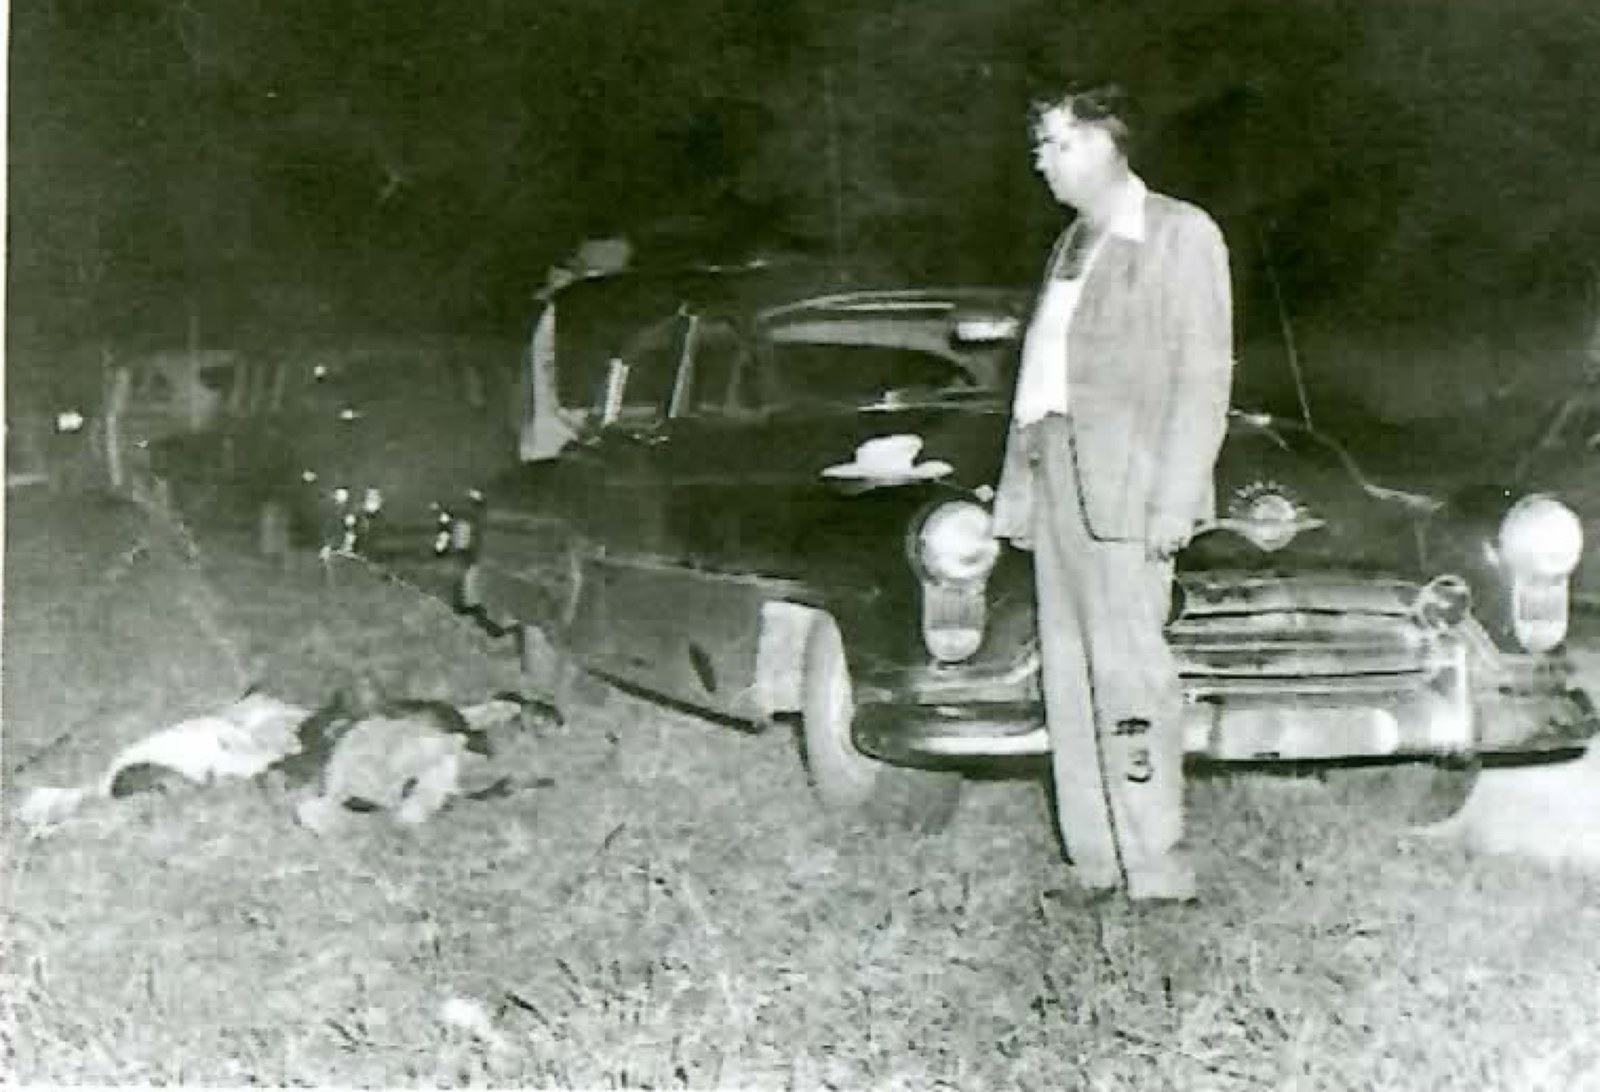 Sheriff Willis V. McCall after shooting prisoners Samuel Shepherd and Walter Irvin on desolate backroad in Lake County, Florida, November 1951.